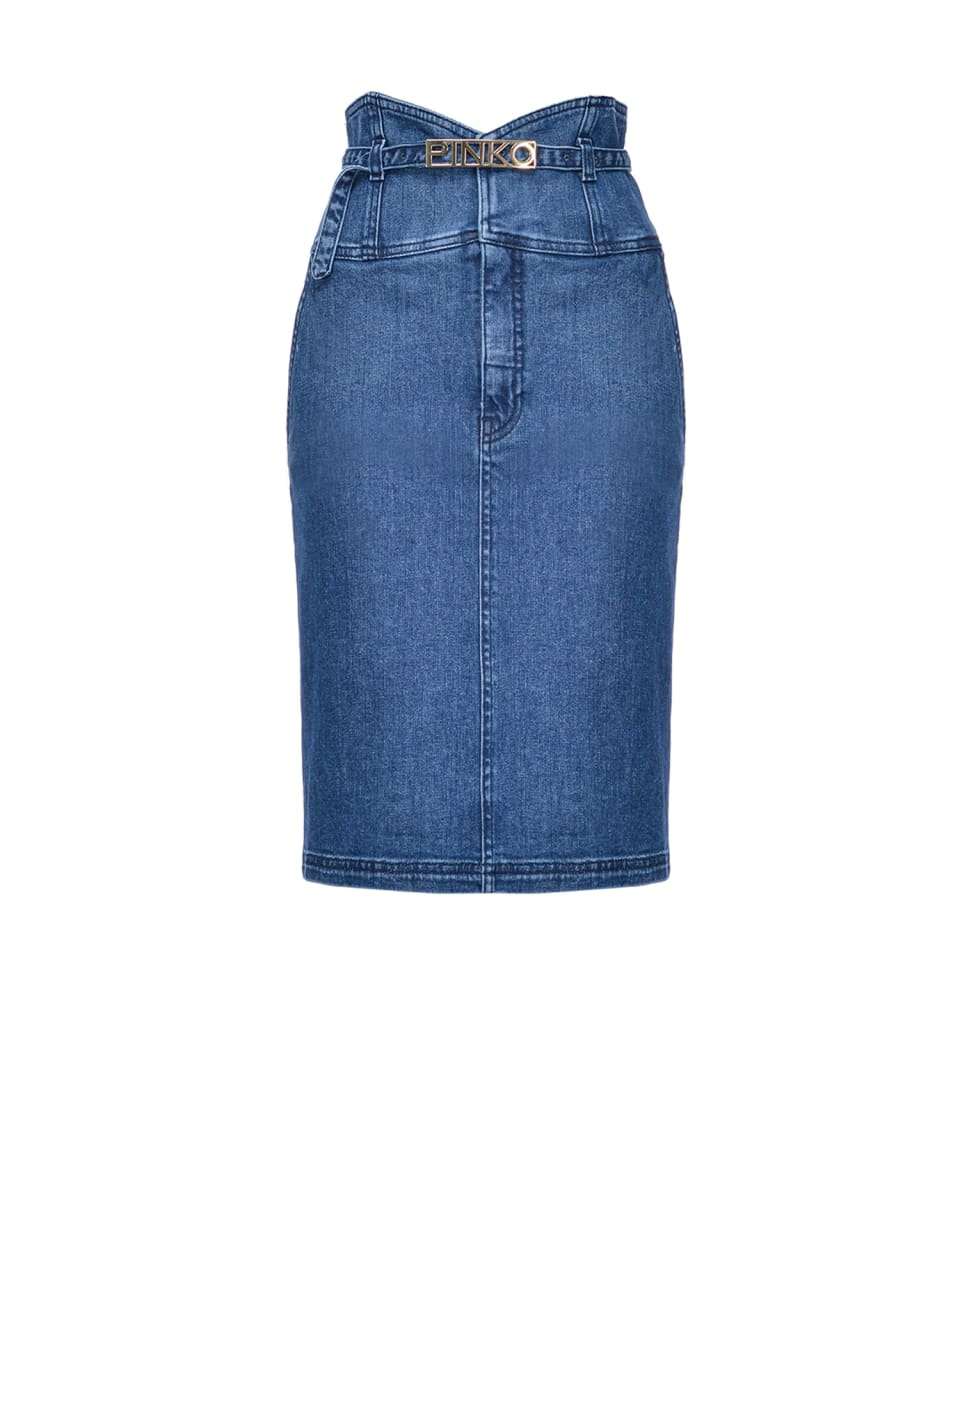 Midi-length bustier skirt in comfort denim